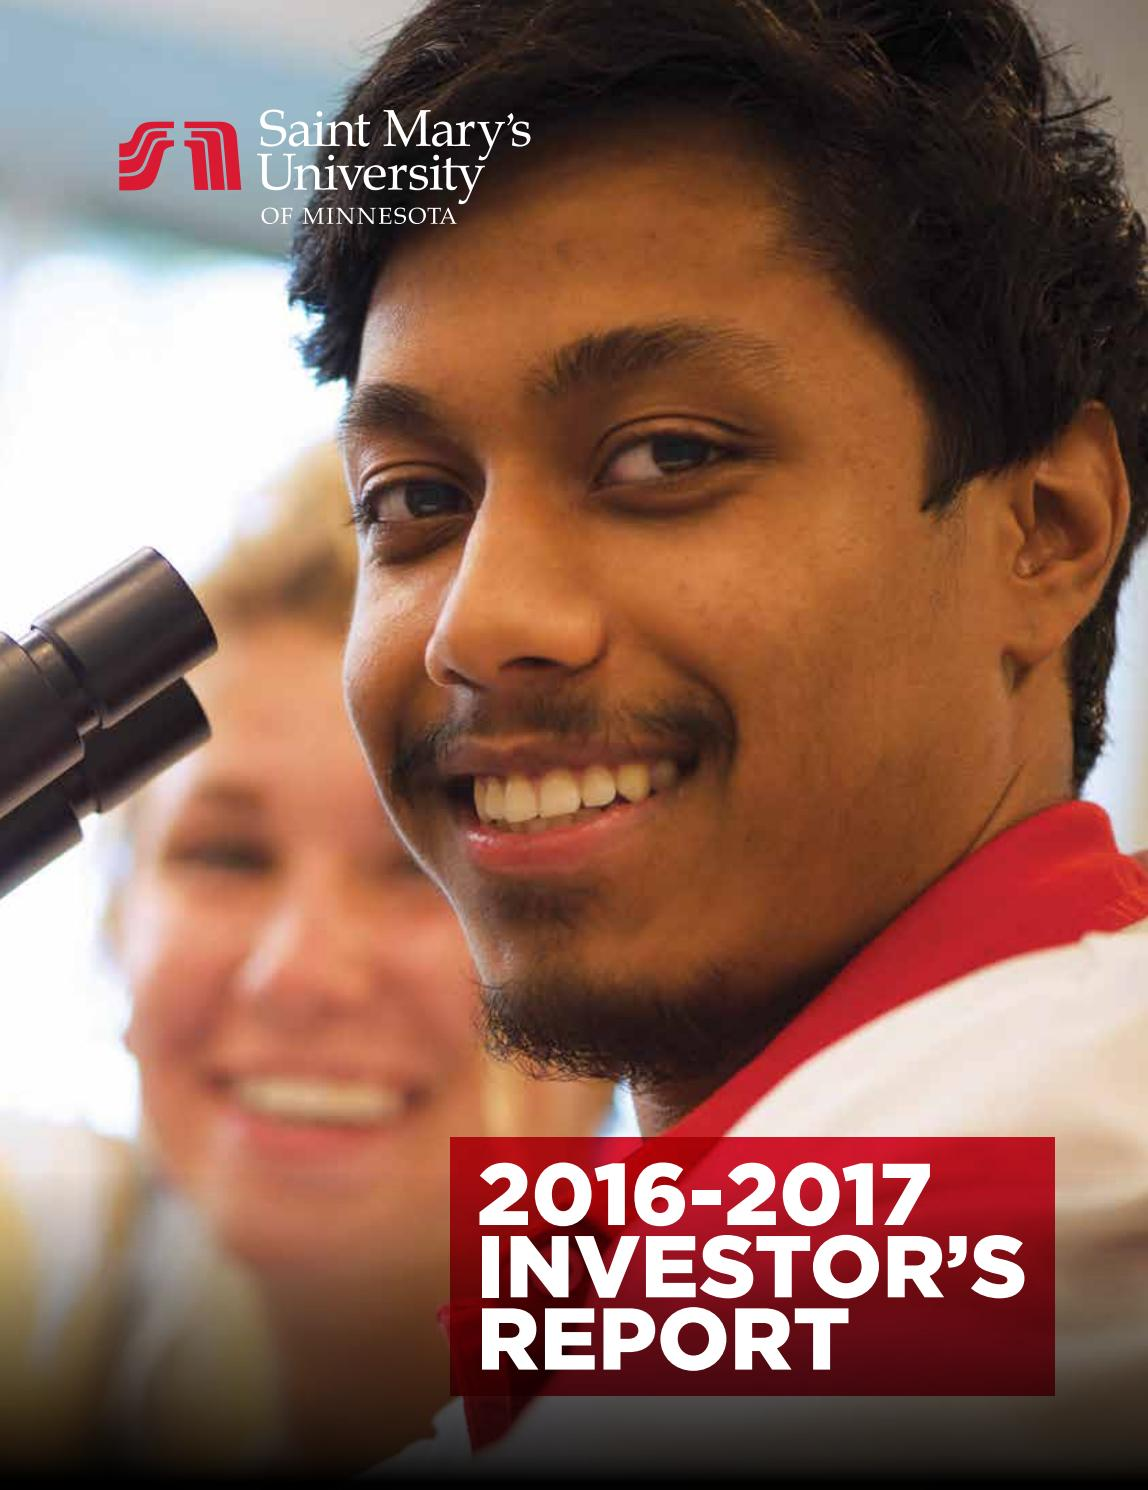 Saint Mary's University of Minnesota - Investor's Report 2016-2017 by Saint  Mary's University - issuu